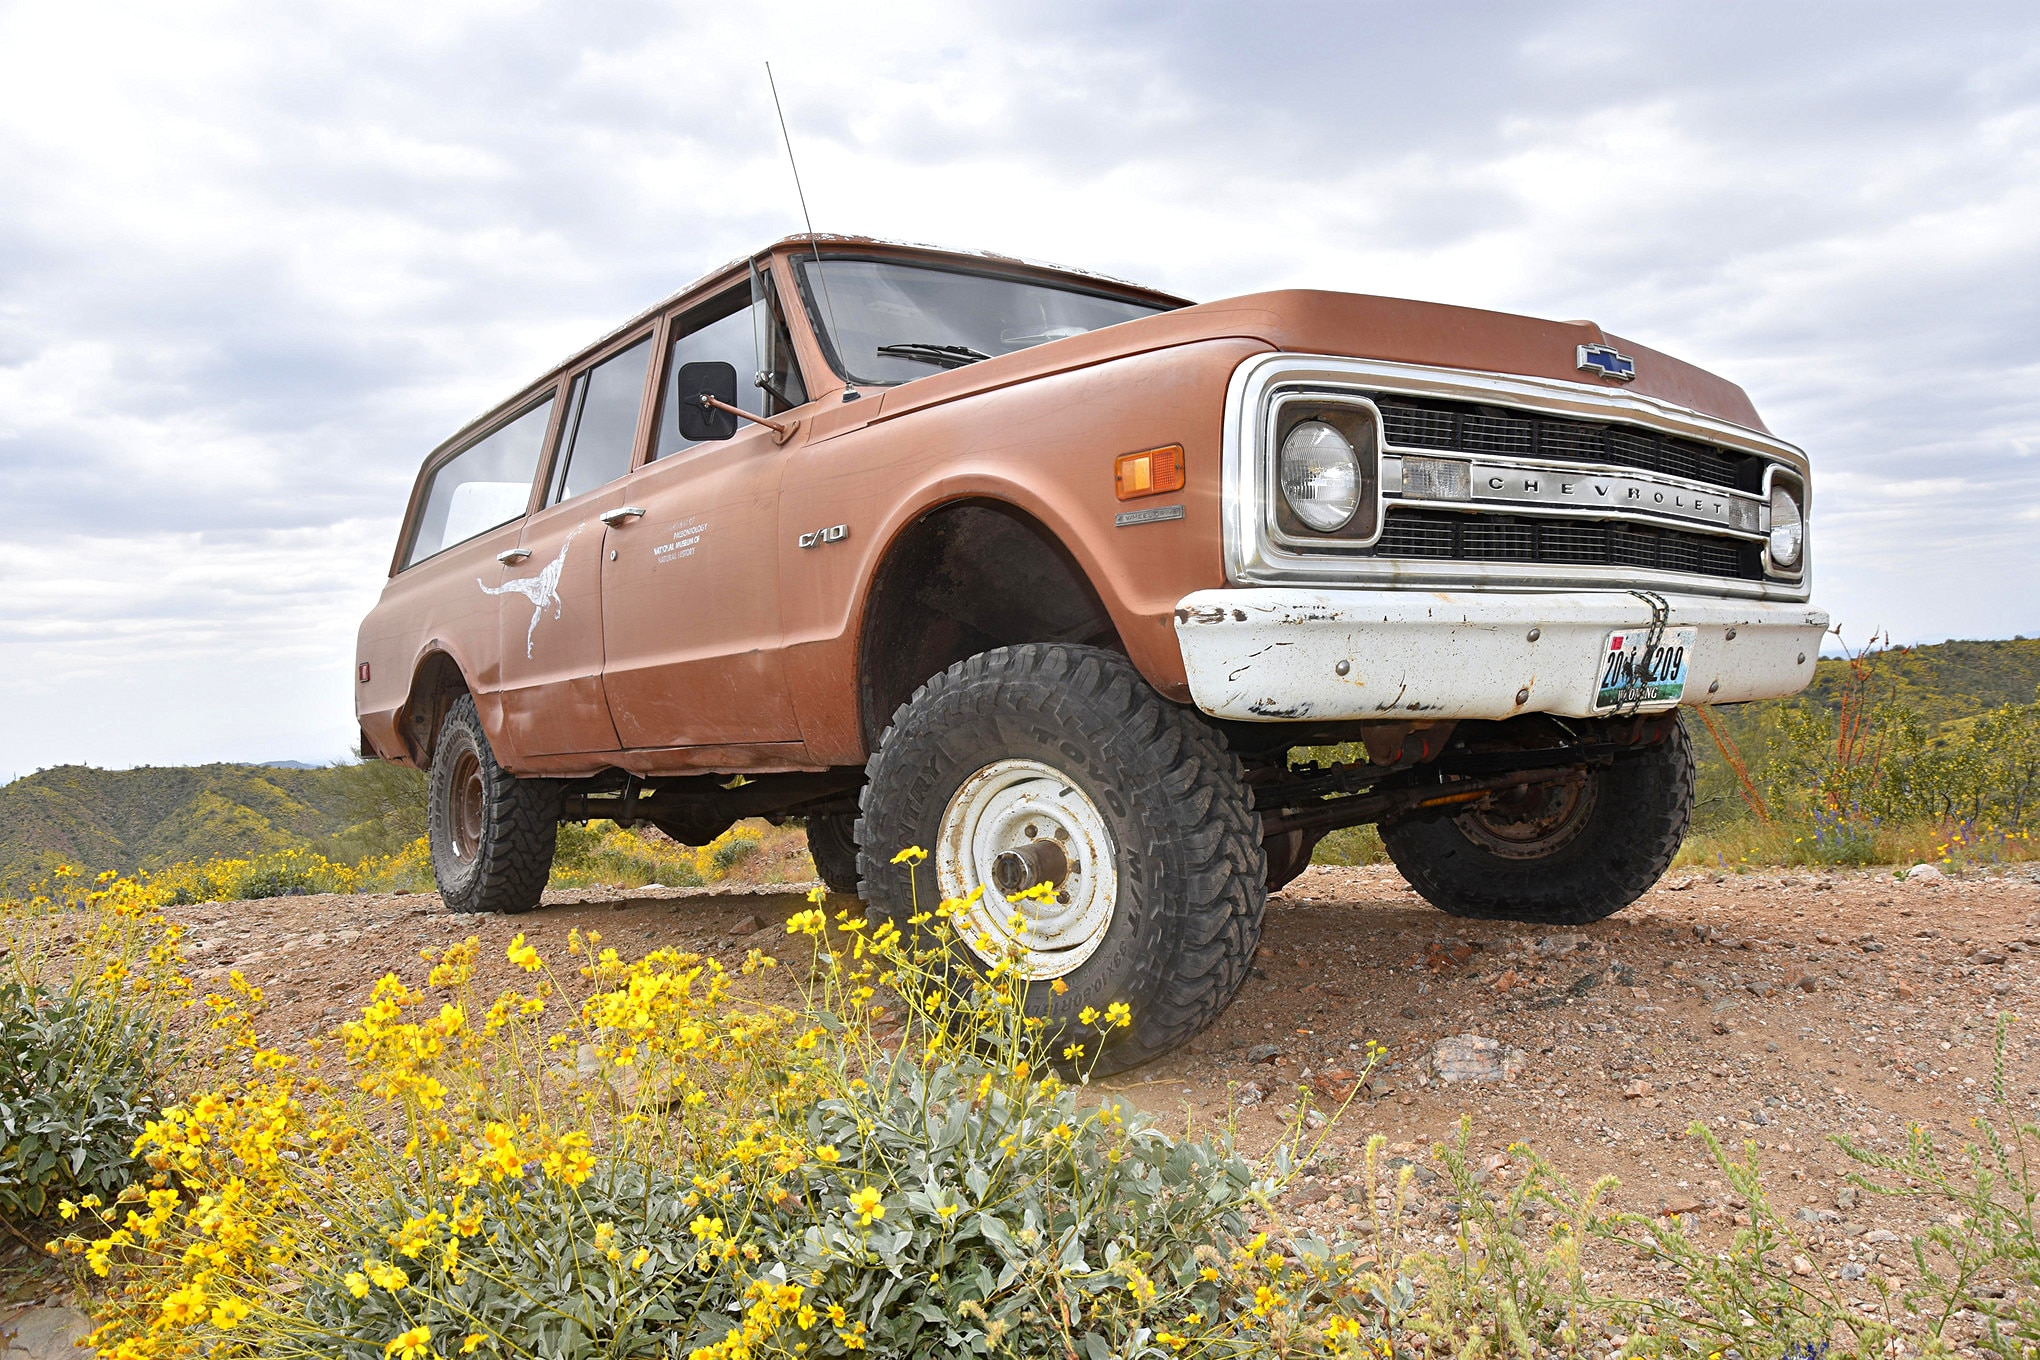 dino suspension lift and tires lead.JPG